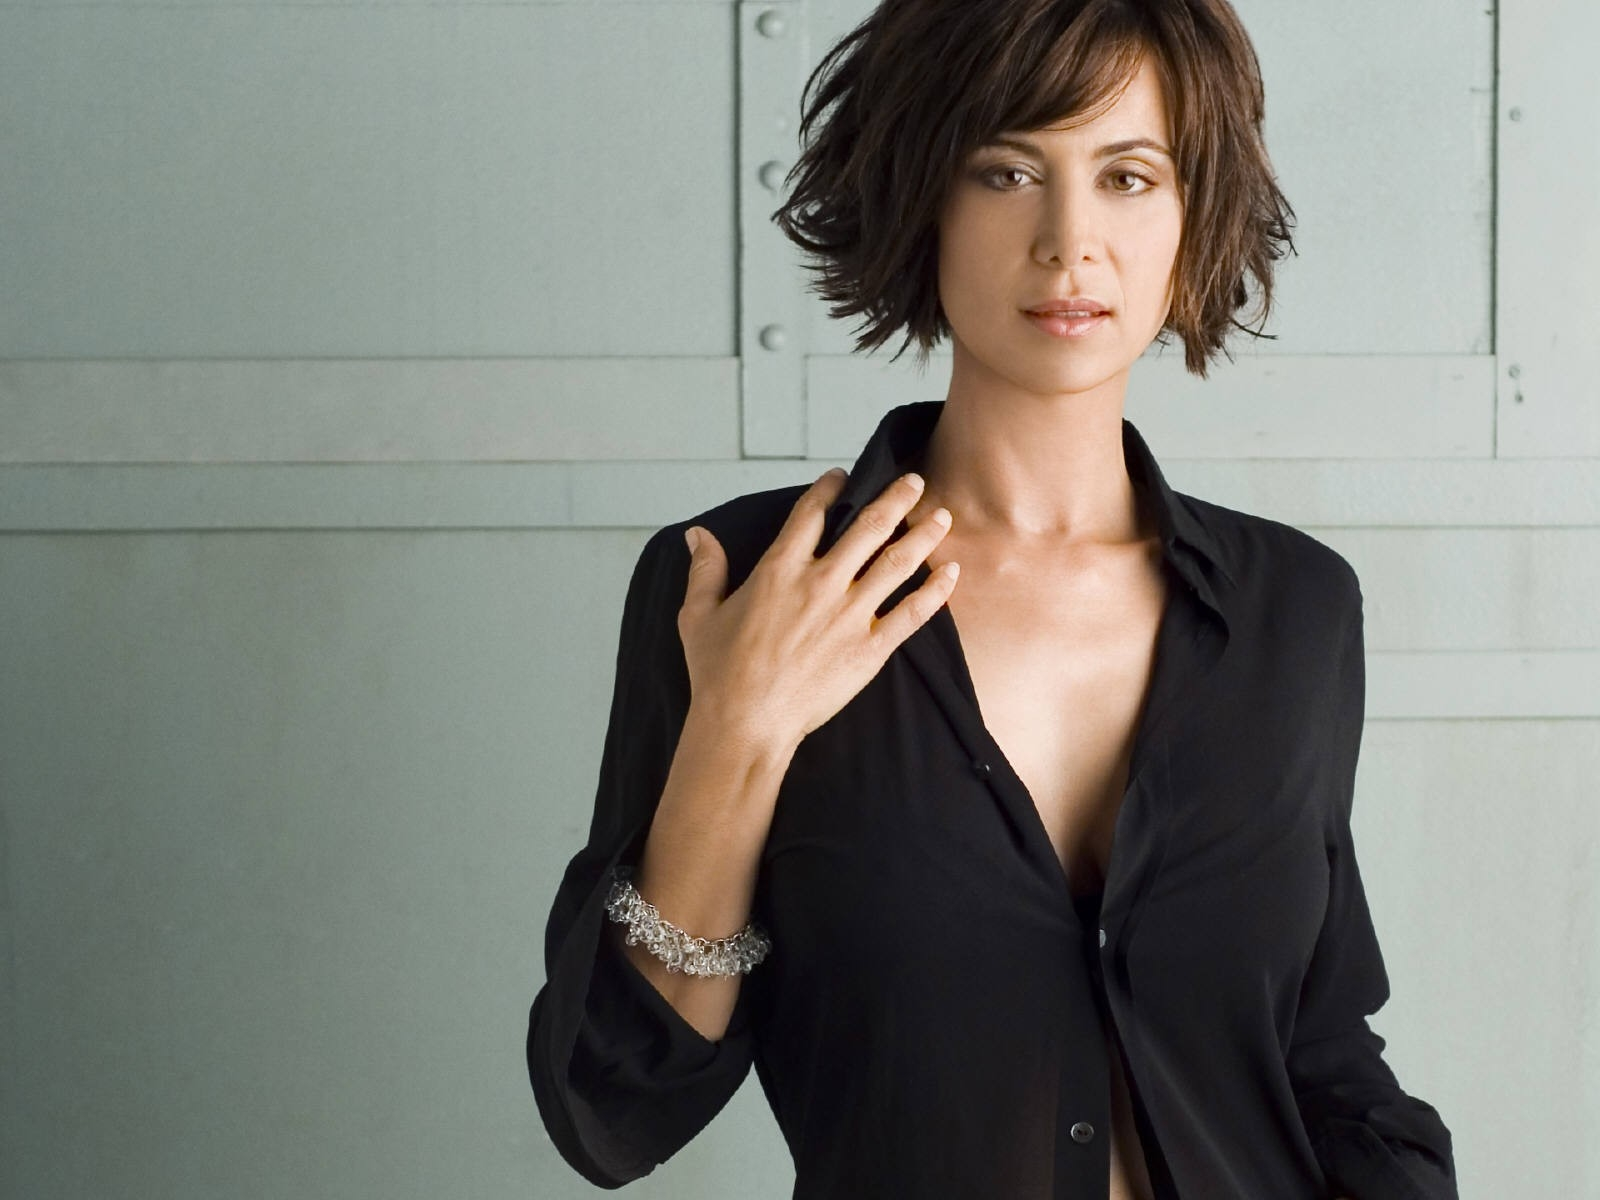 Elegante wallpaper di Catherine Bell